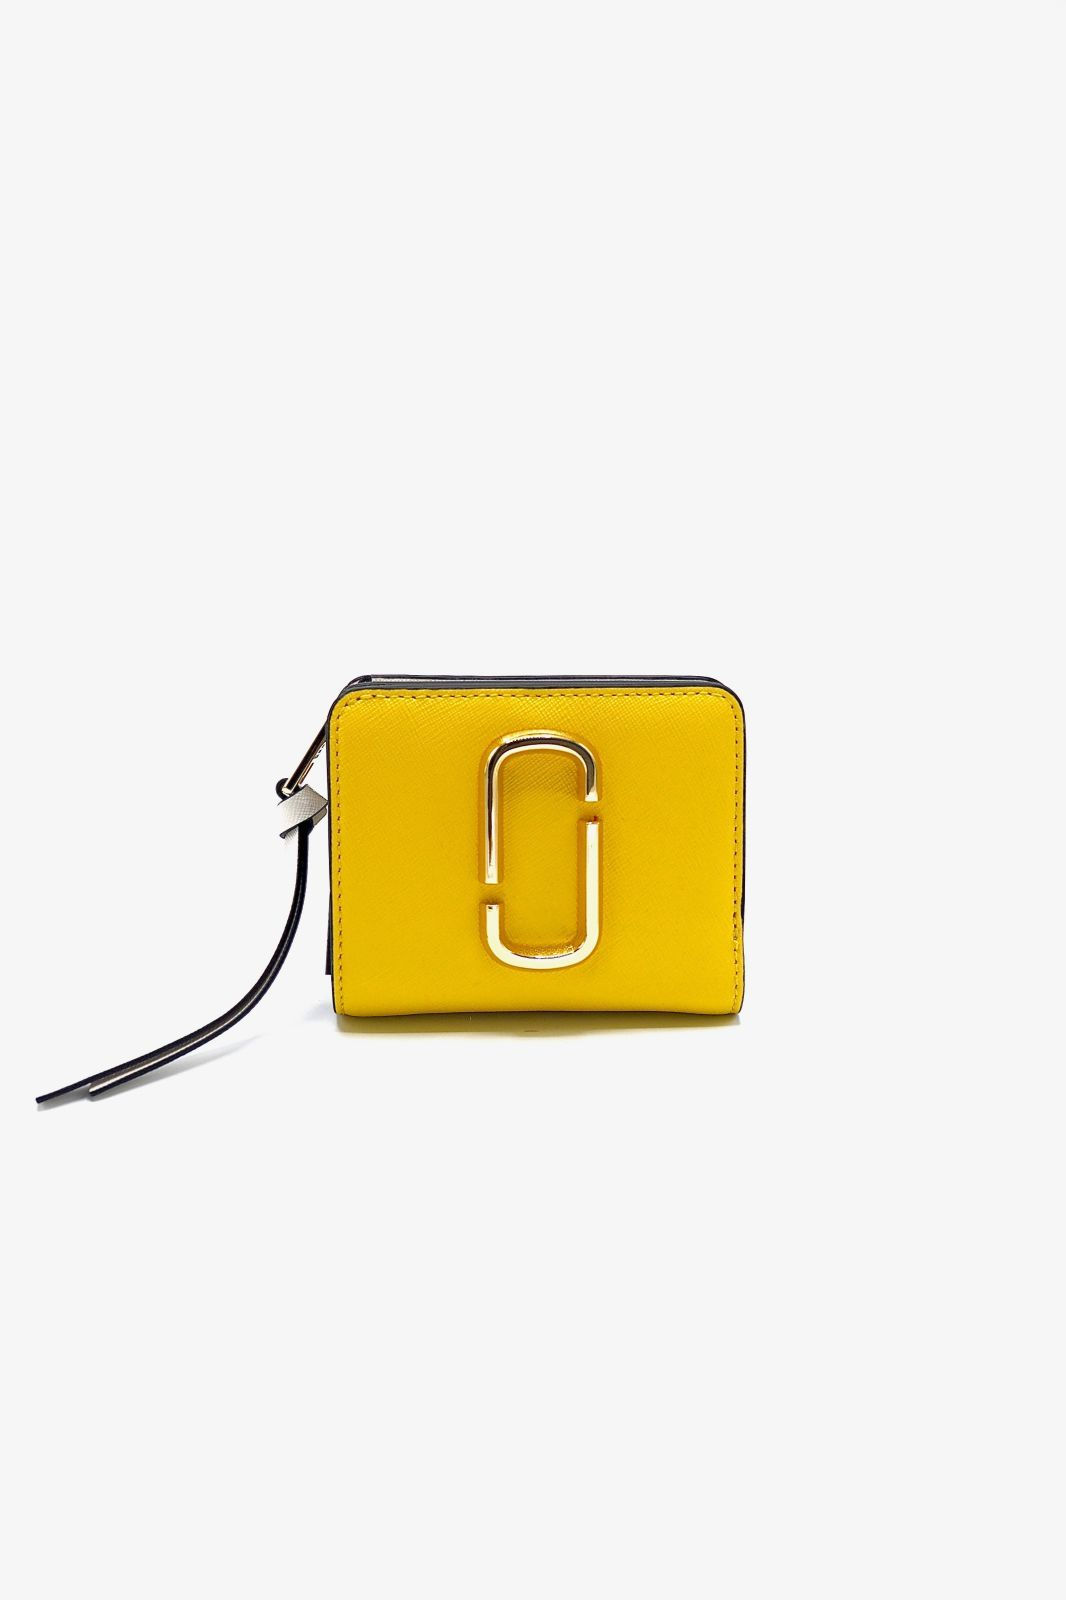 Marc Jacobs porte feuilles Jaune femmes (MJACOBS-Mini PF Banana - 13360-756 Mini Wallet Plantain) - Marine | Much more than shoes